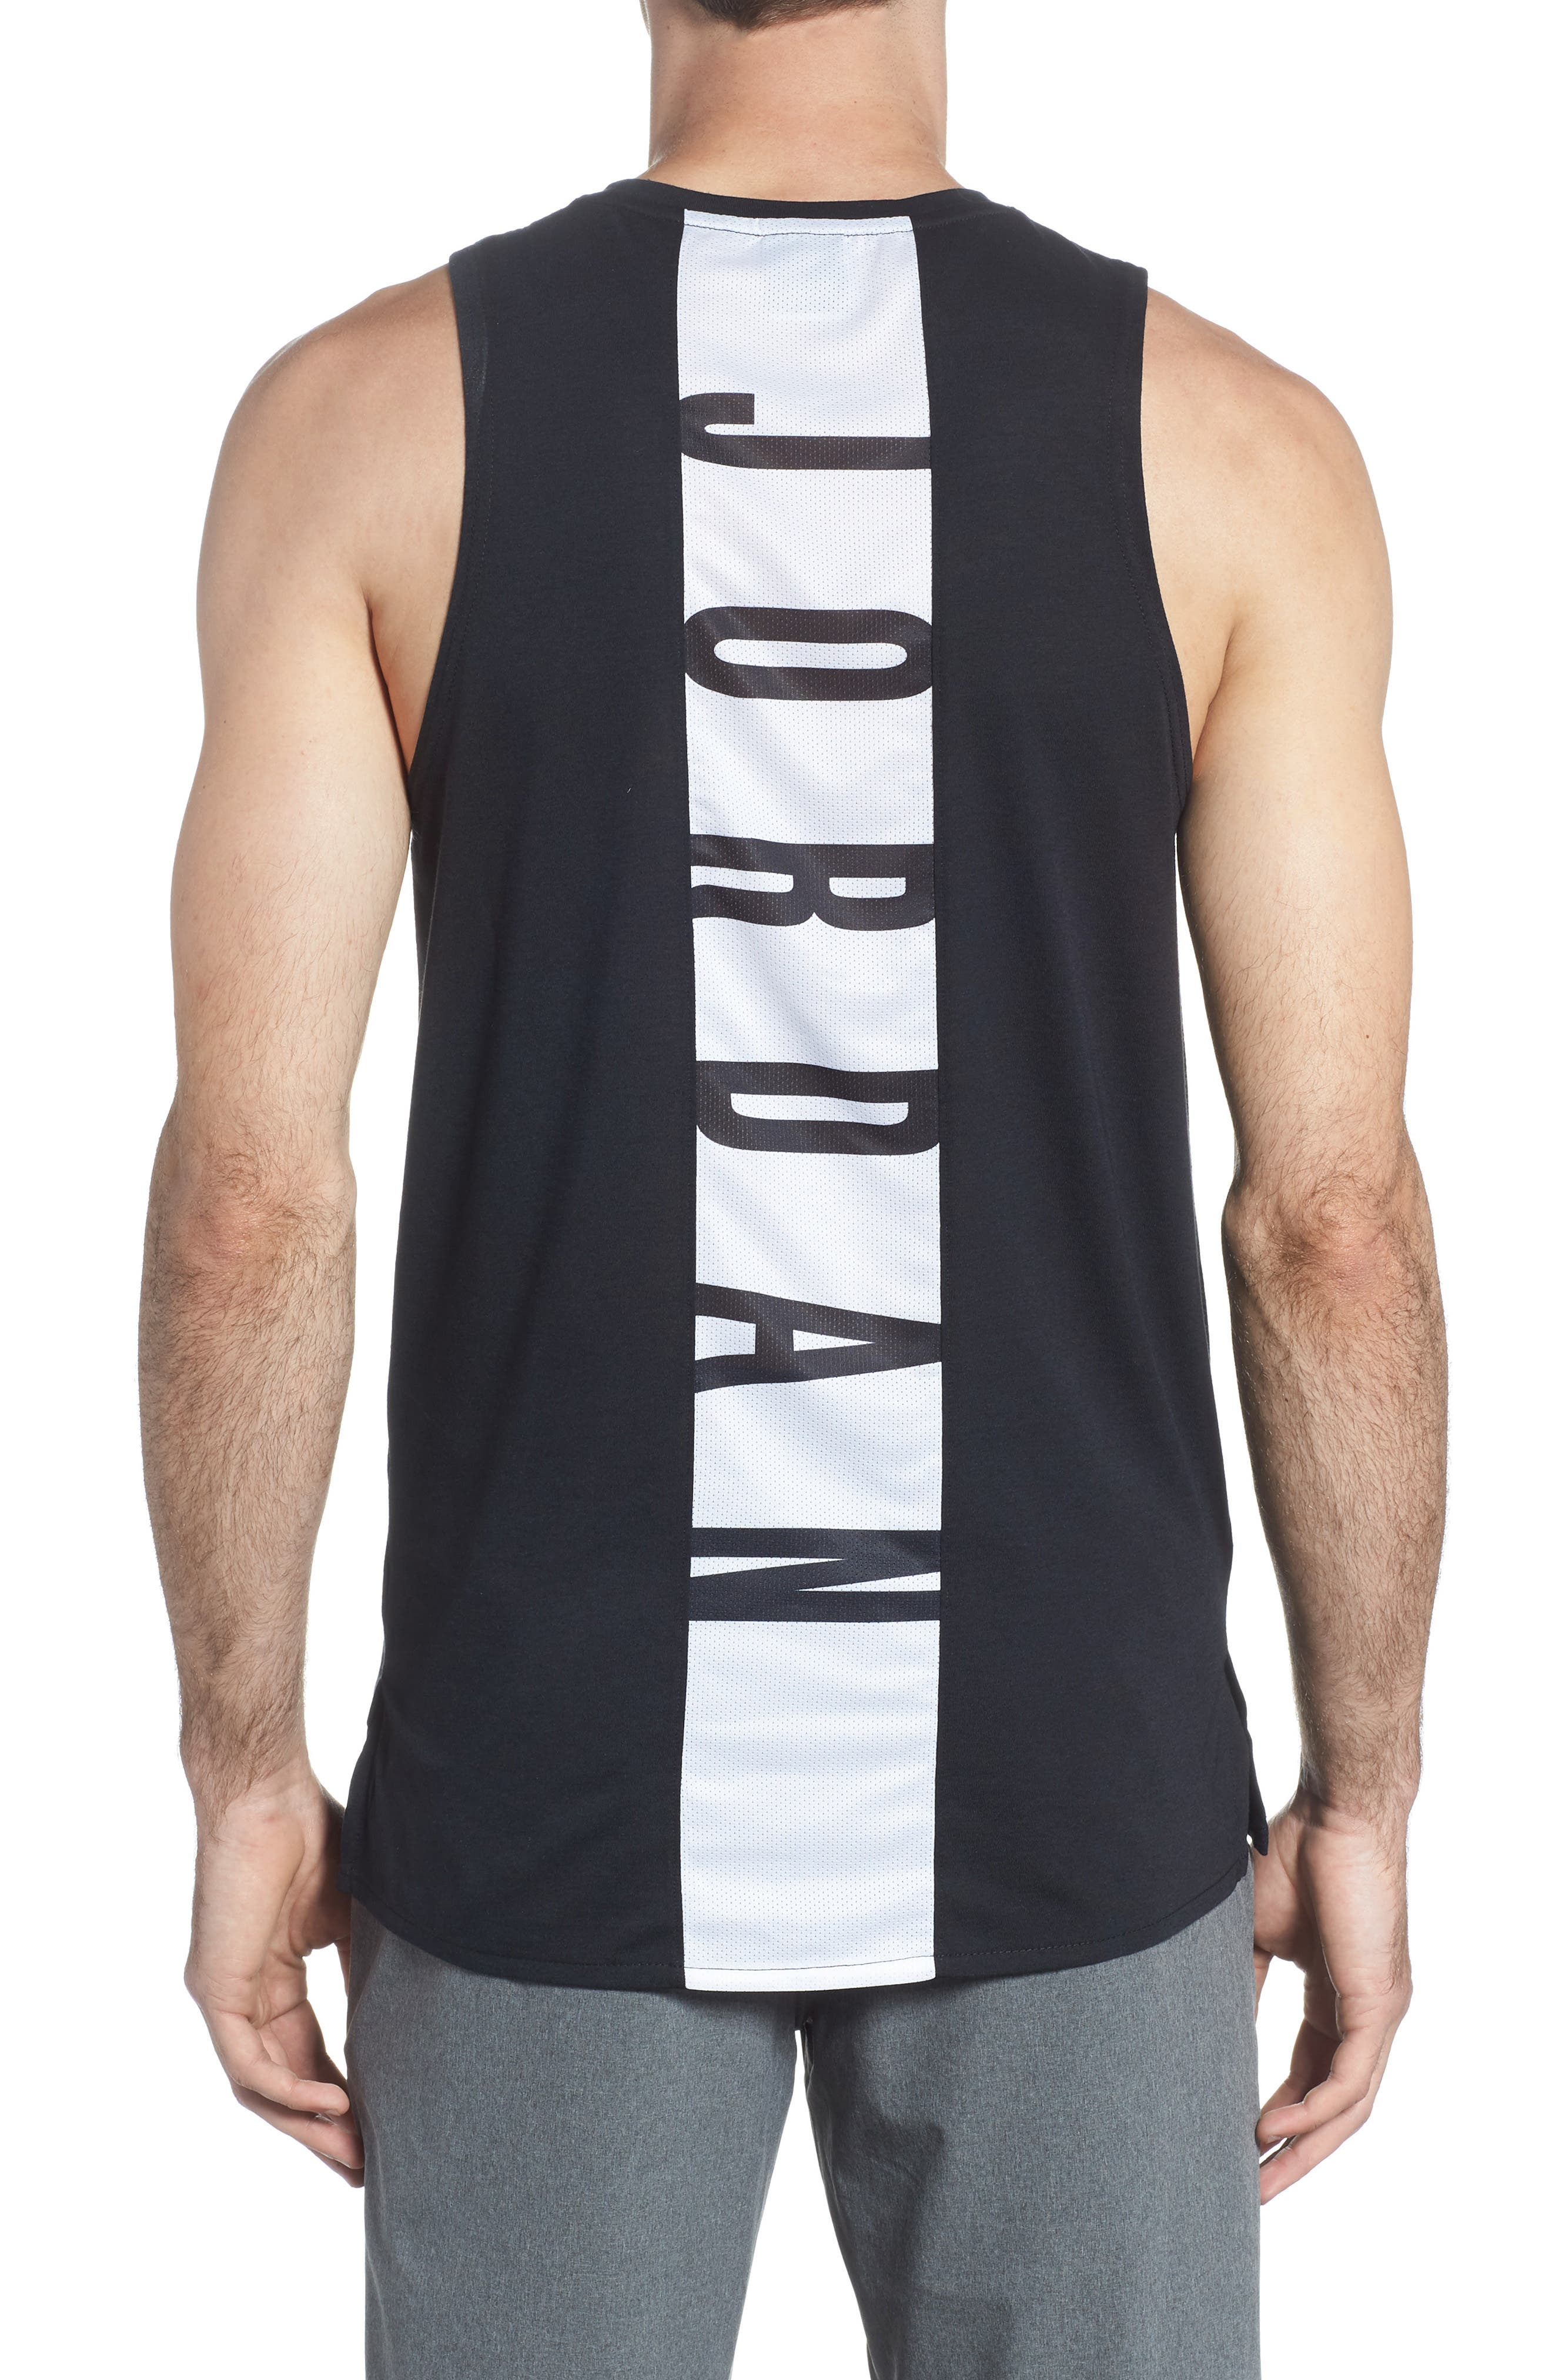 23 Alpha Dry Tank,                             Alternate thumbnail 2, color,                             BLACK/ WHITE